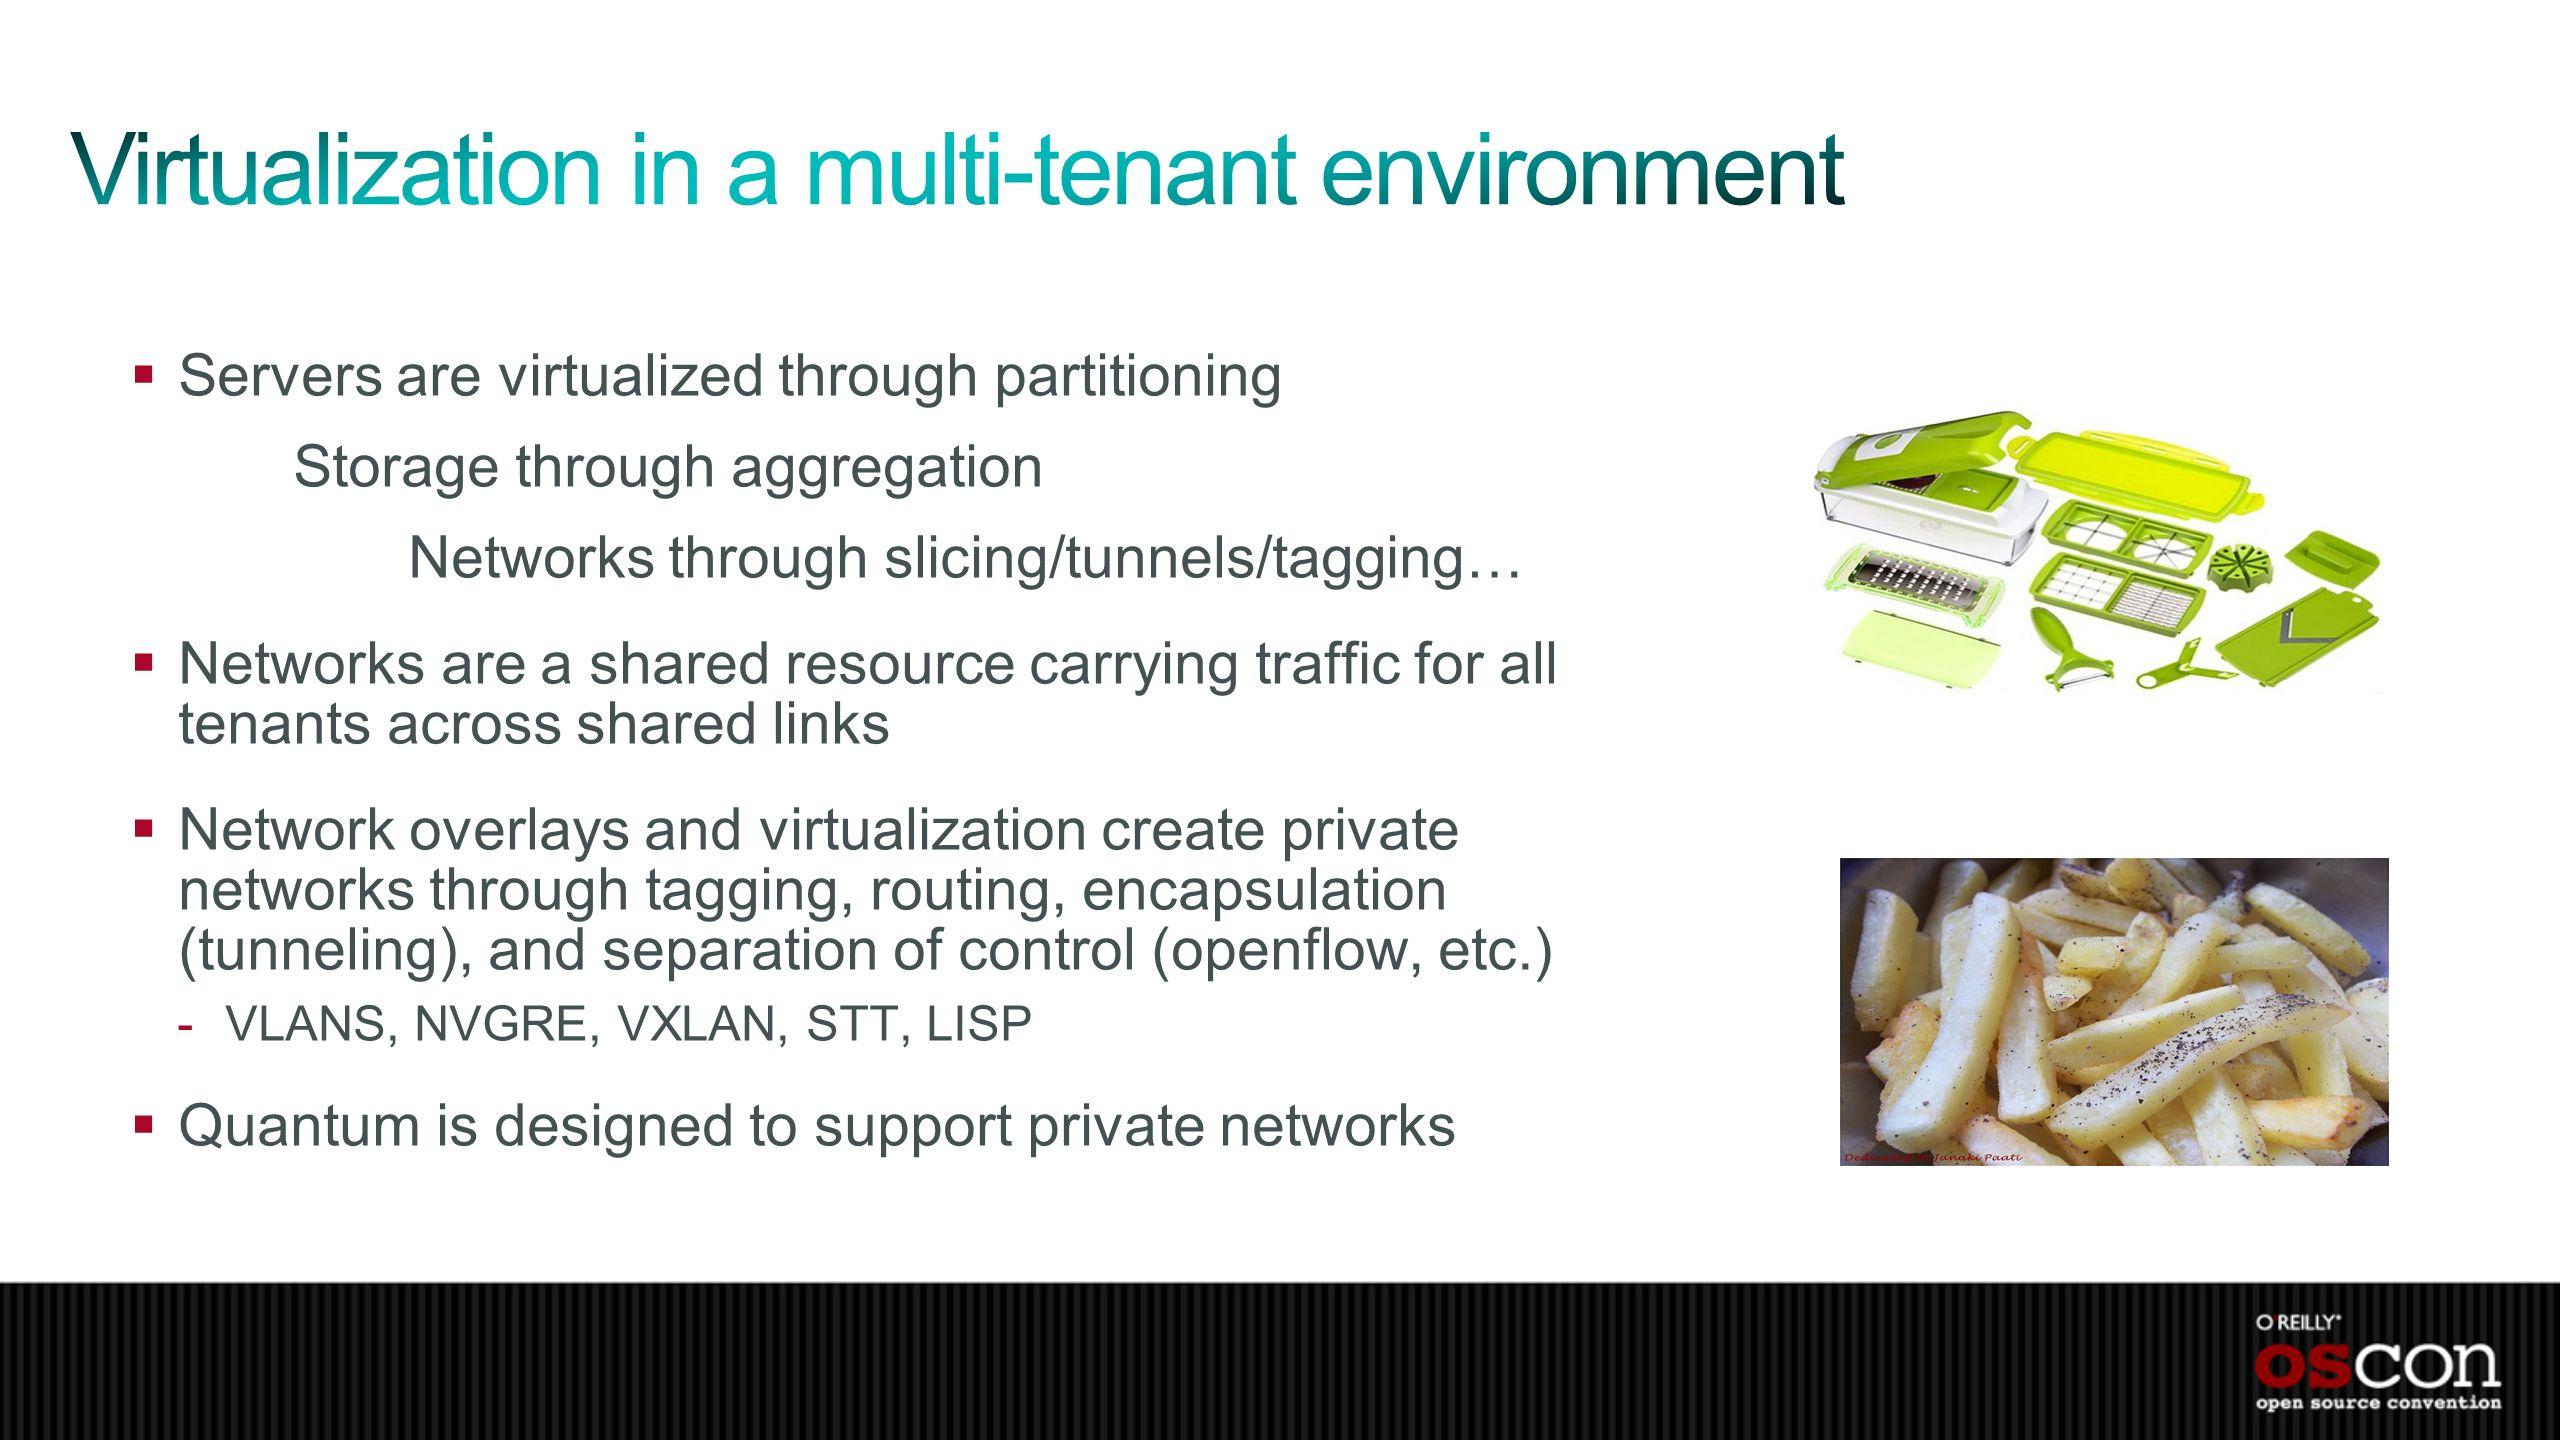 Virtualization in a multi-tenant environment